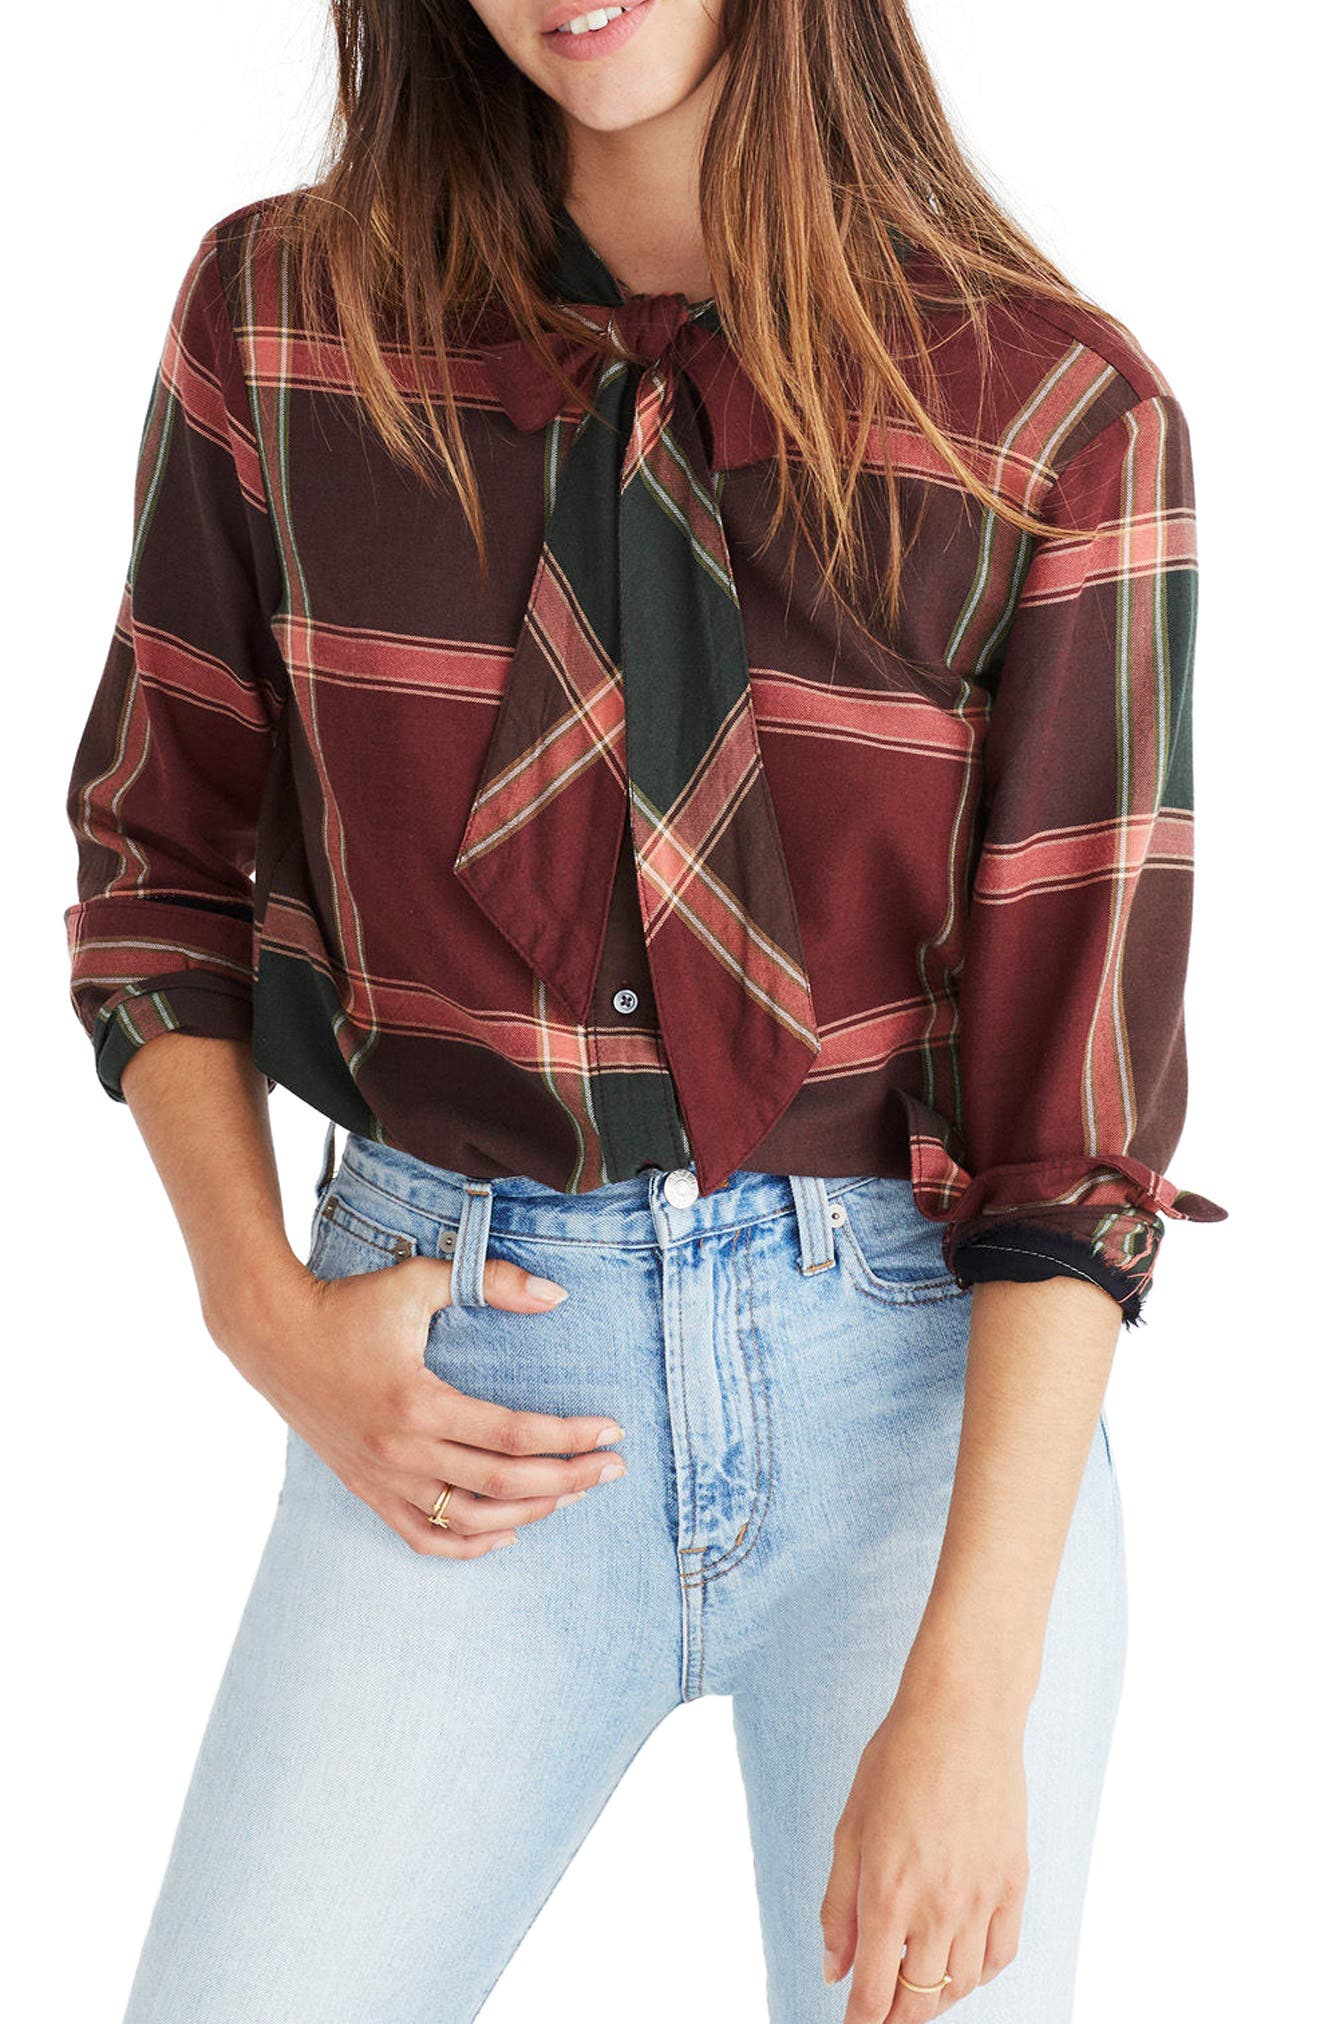 Main Image - Madewell Plaid Tie Neck Shirt